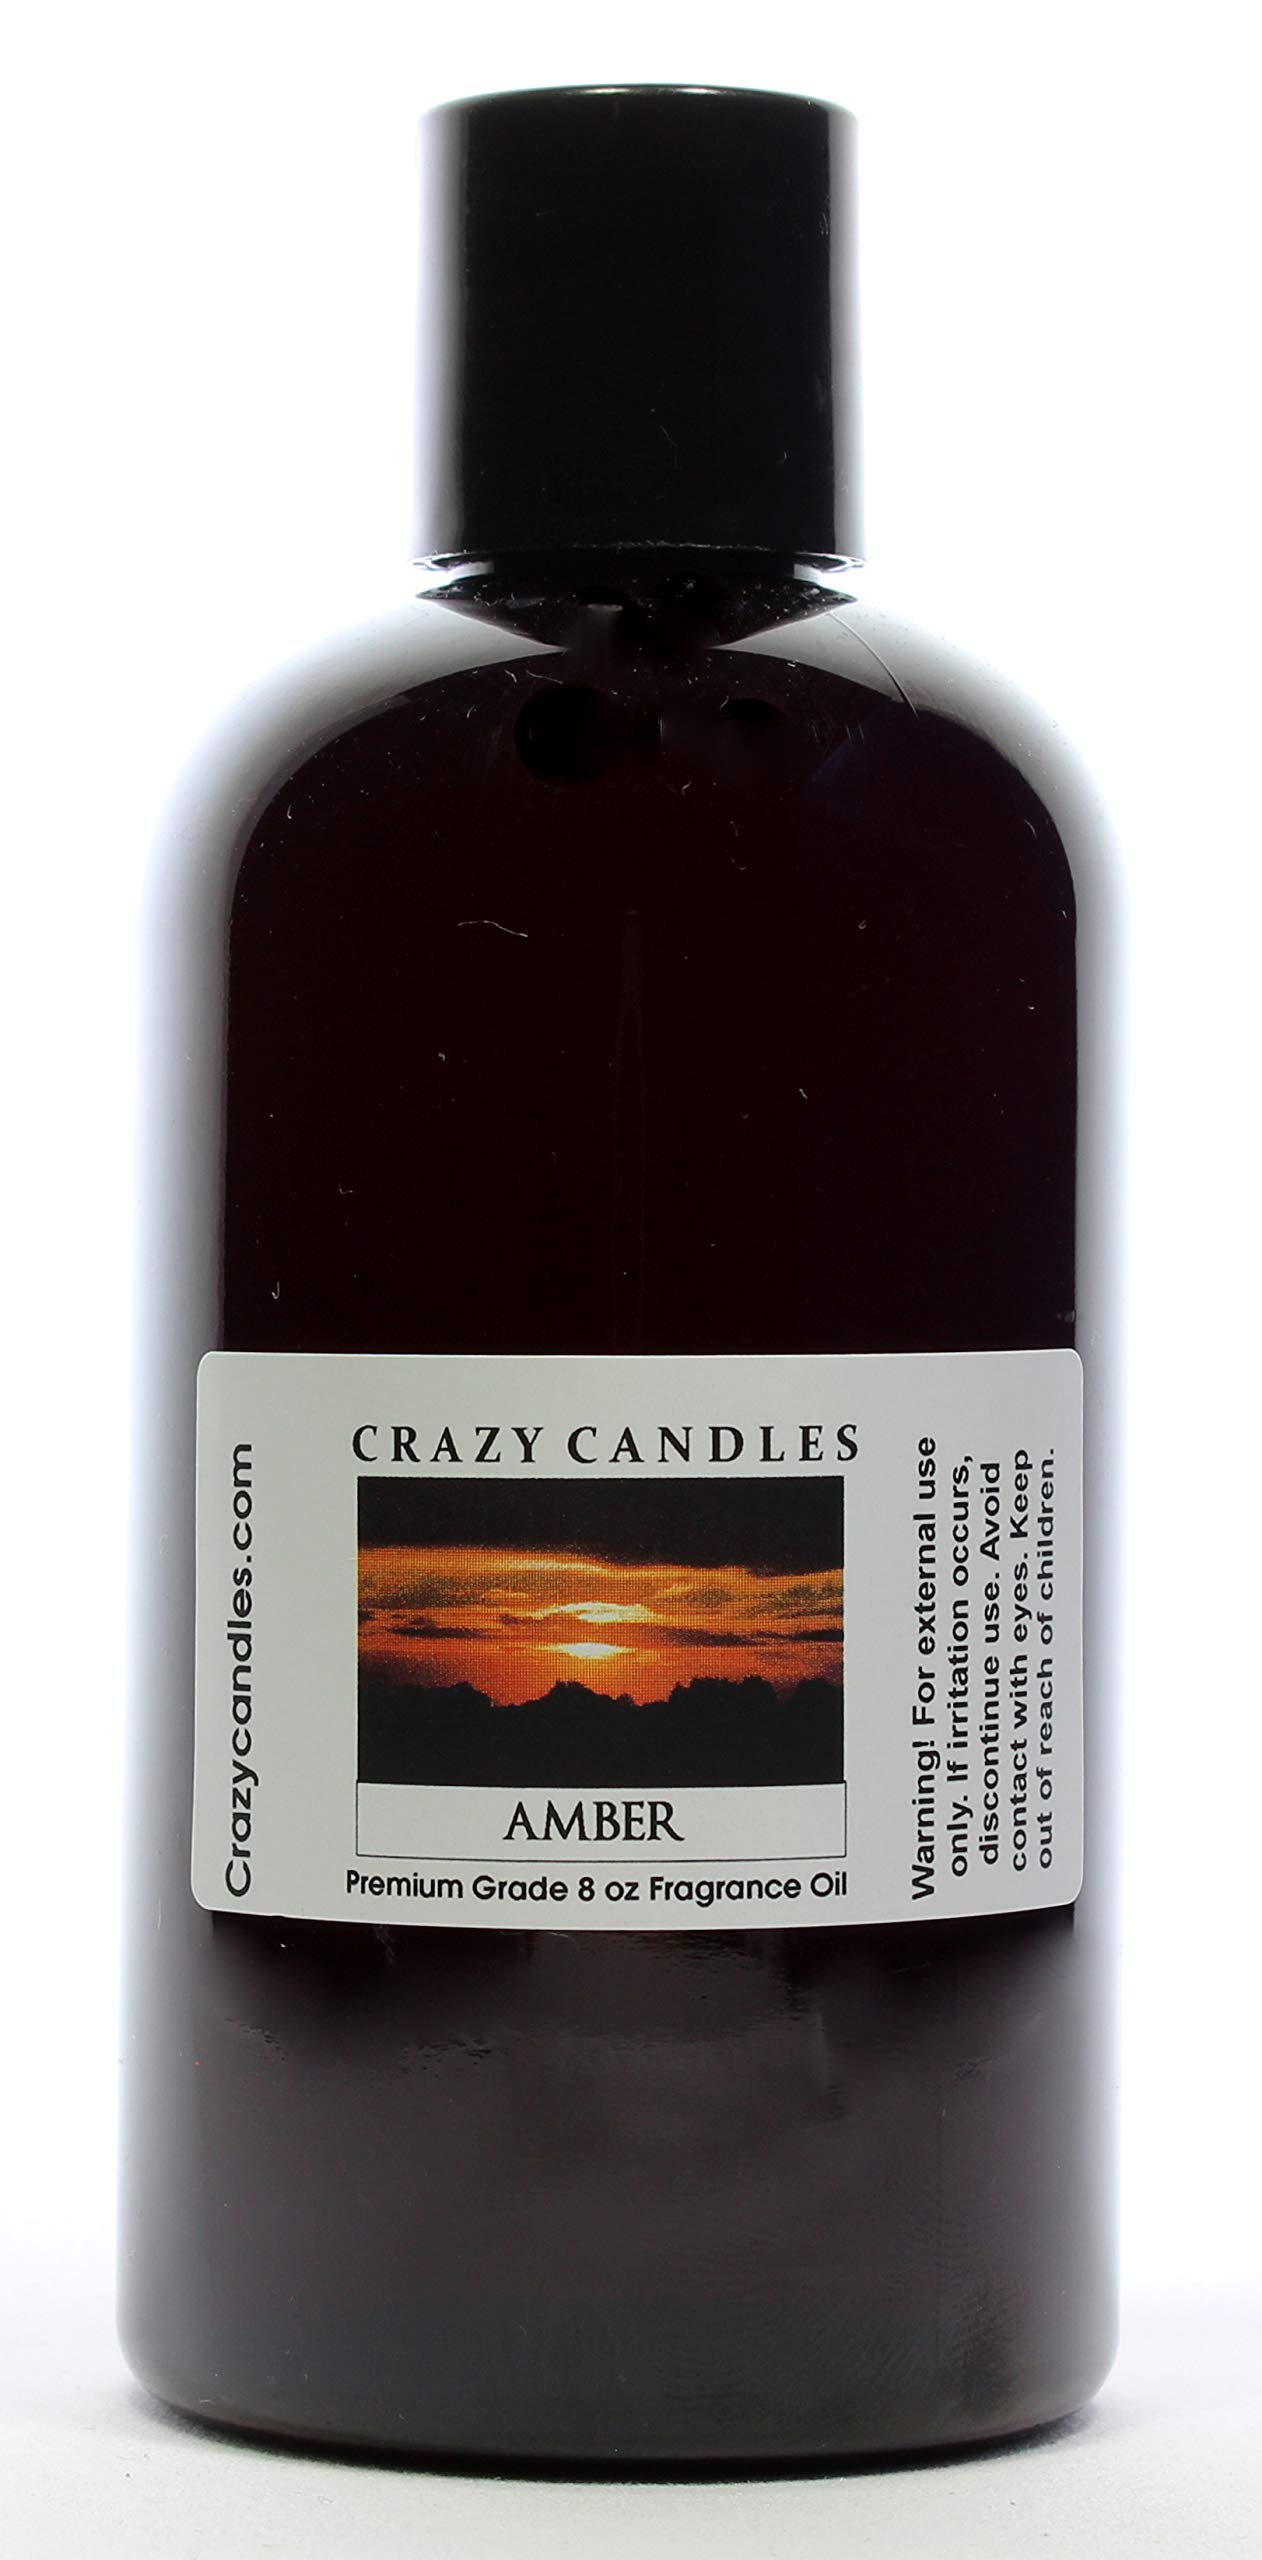 Crazy Candles 8oz Amber 8 Fl Oz Bottle (237ml) Premium Grade Scented Fragrance Oil